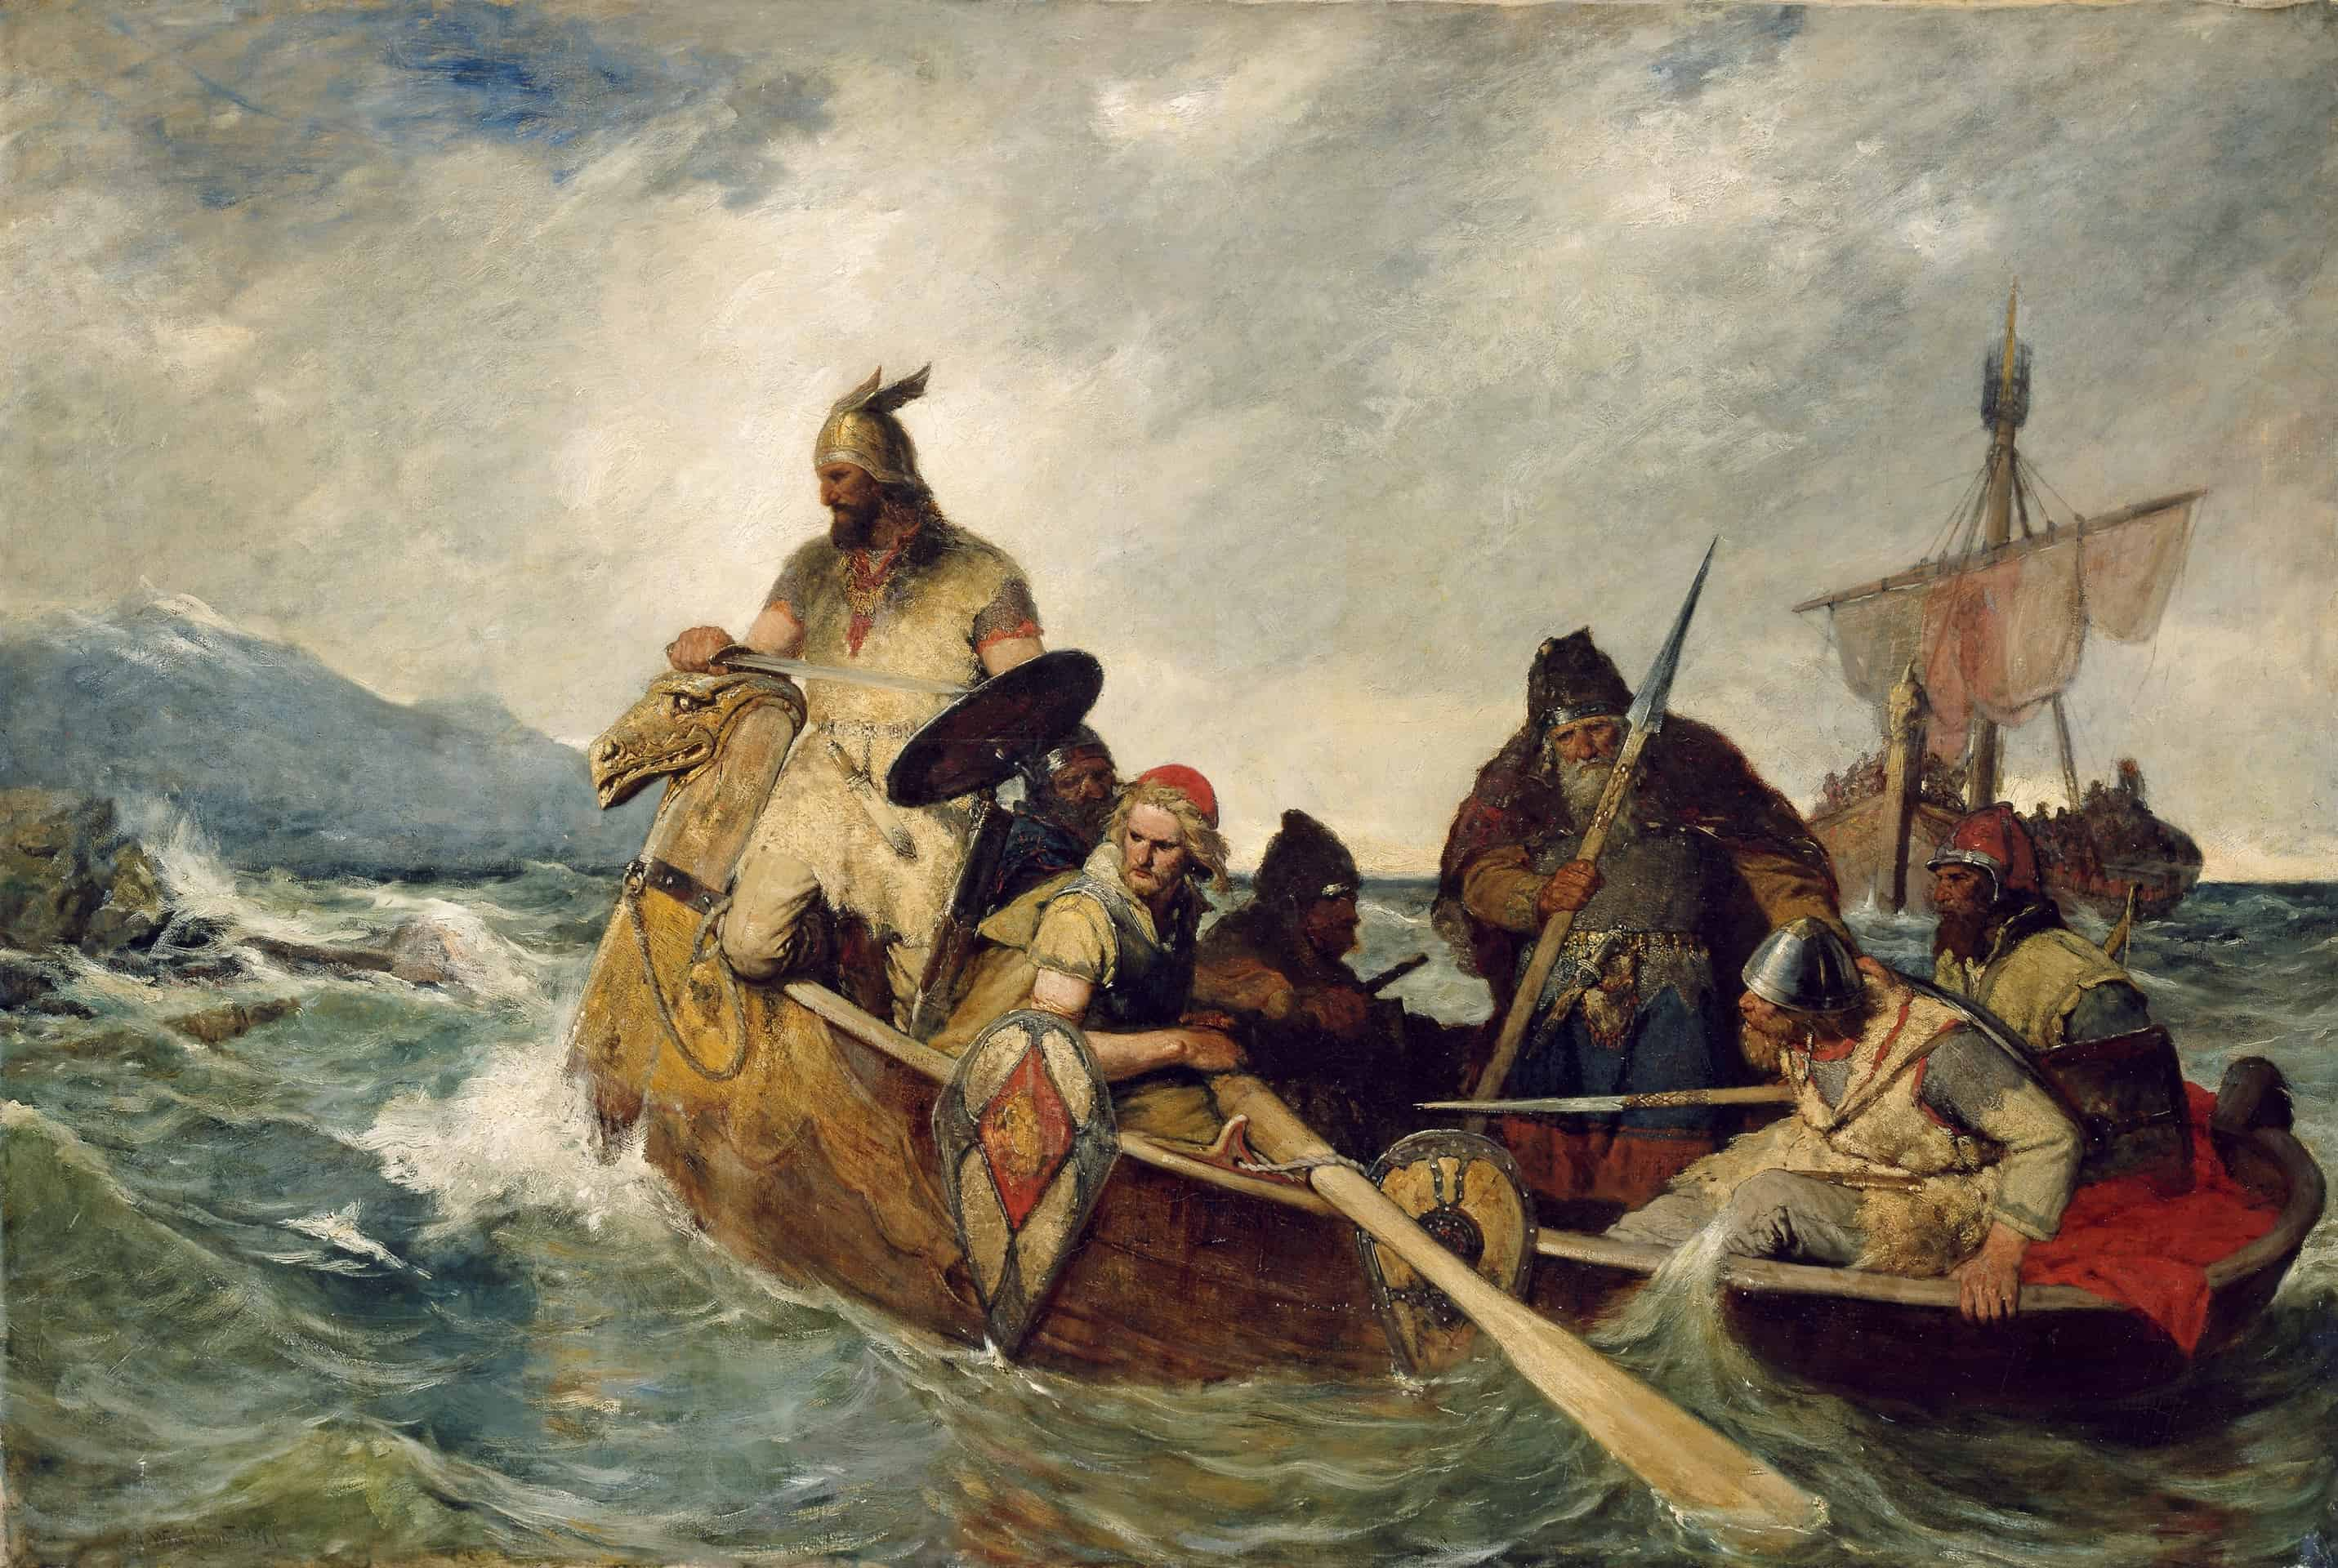 A depiction of the Norwegians landing in Iceland